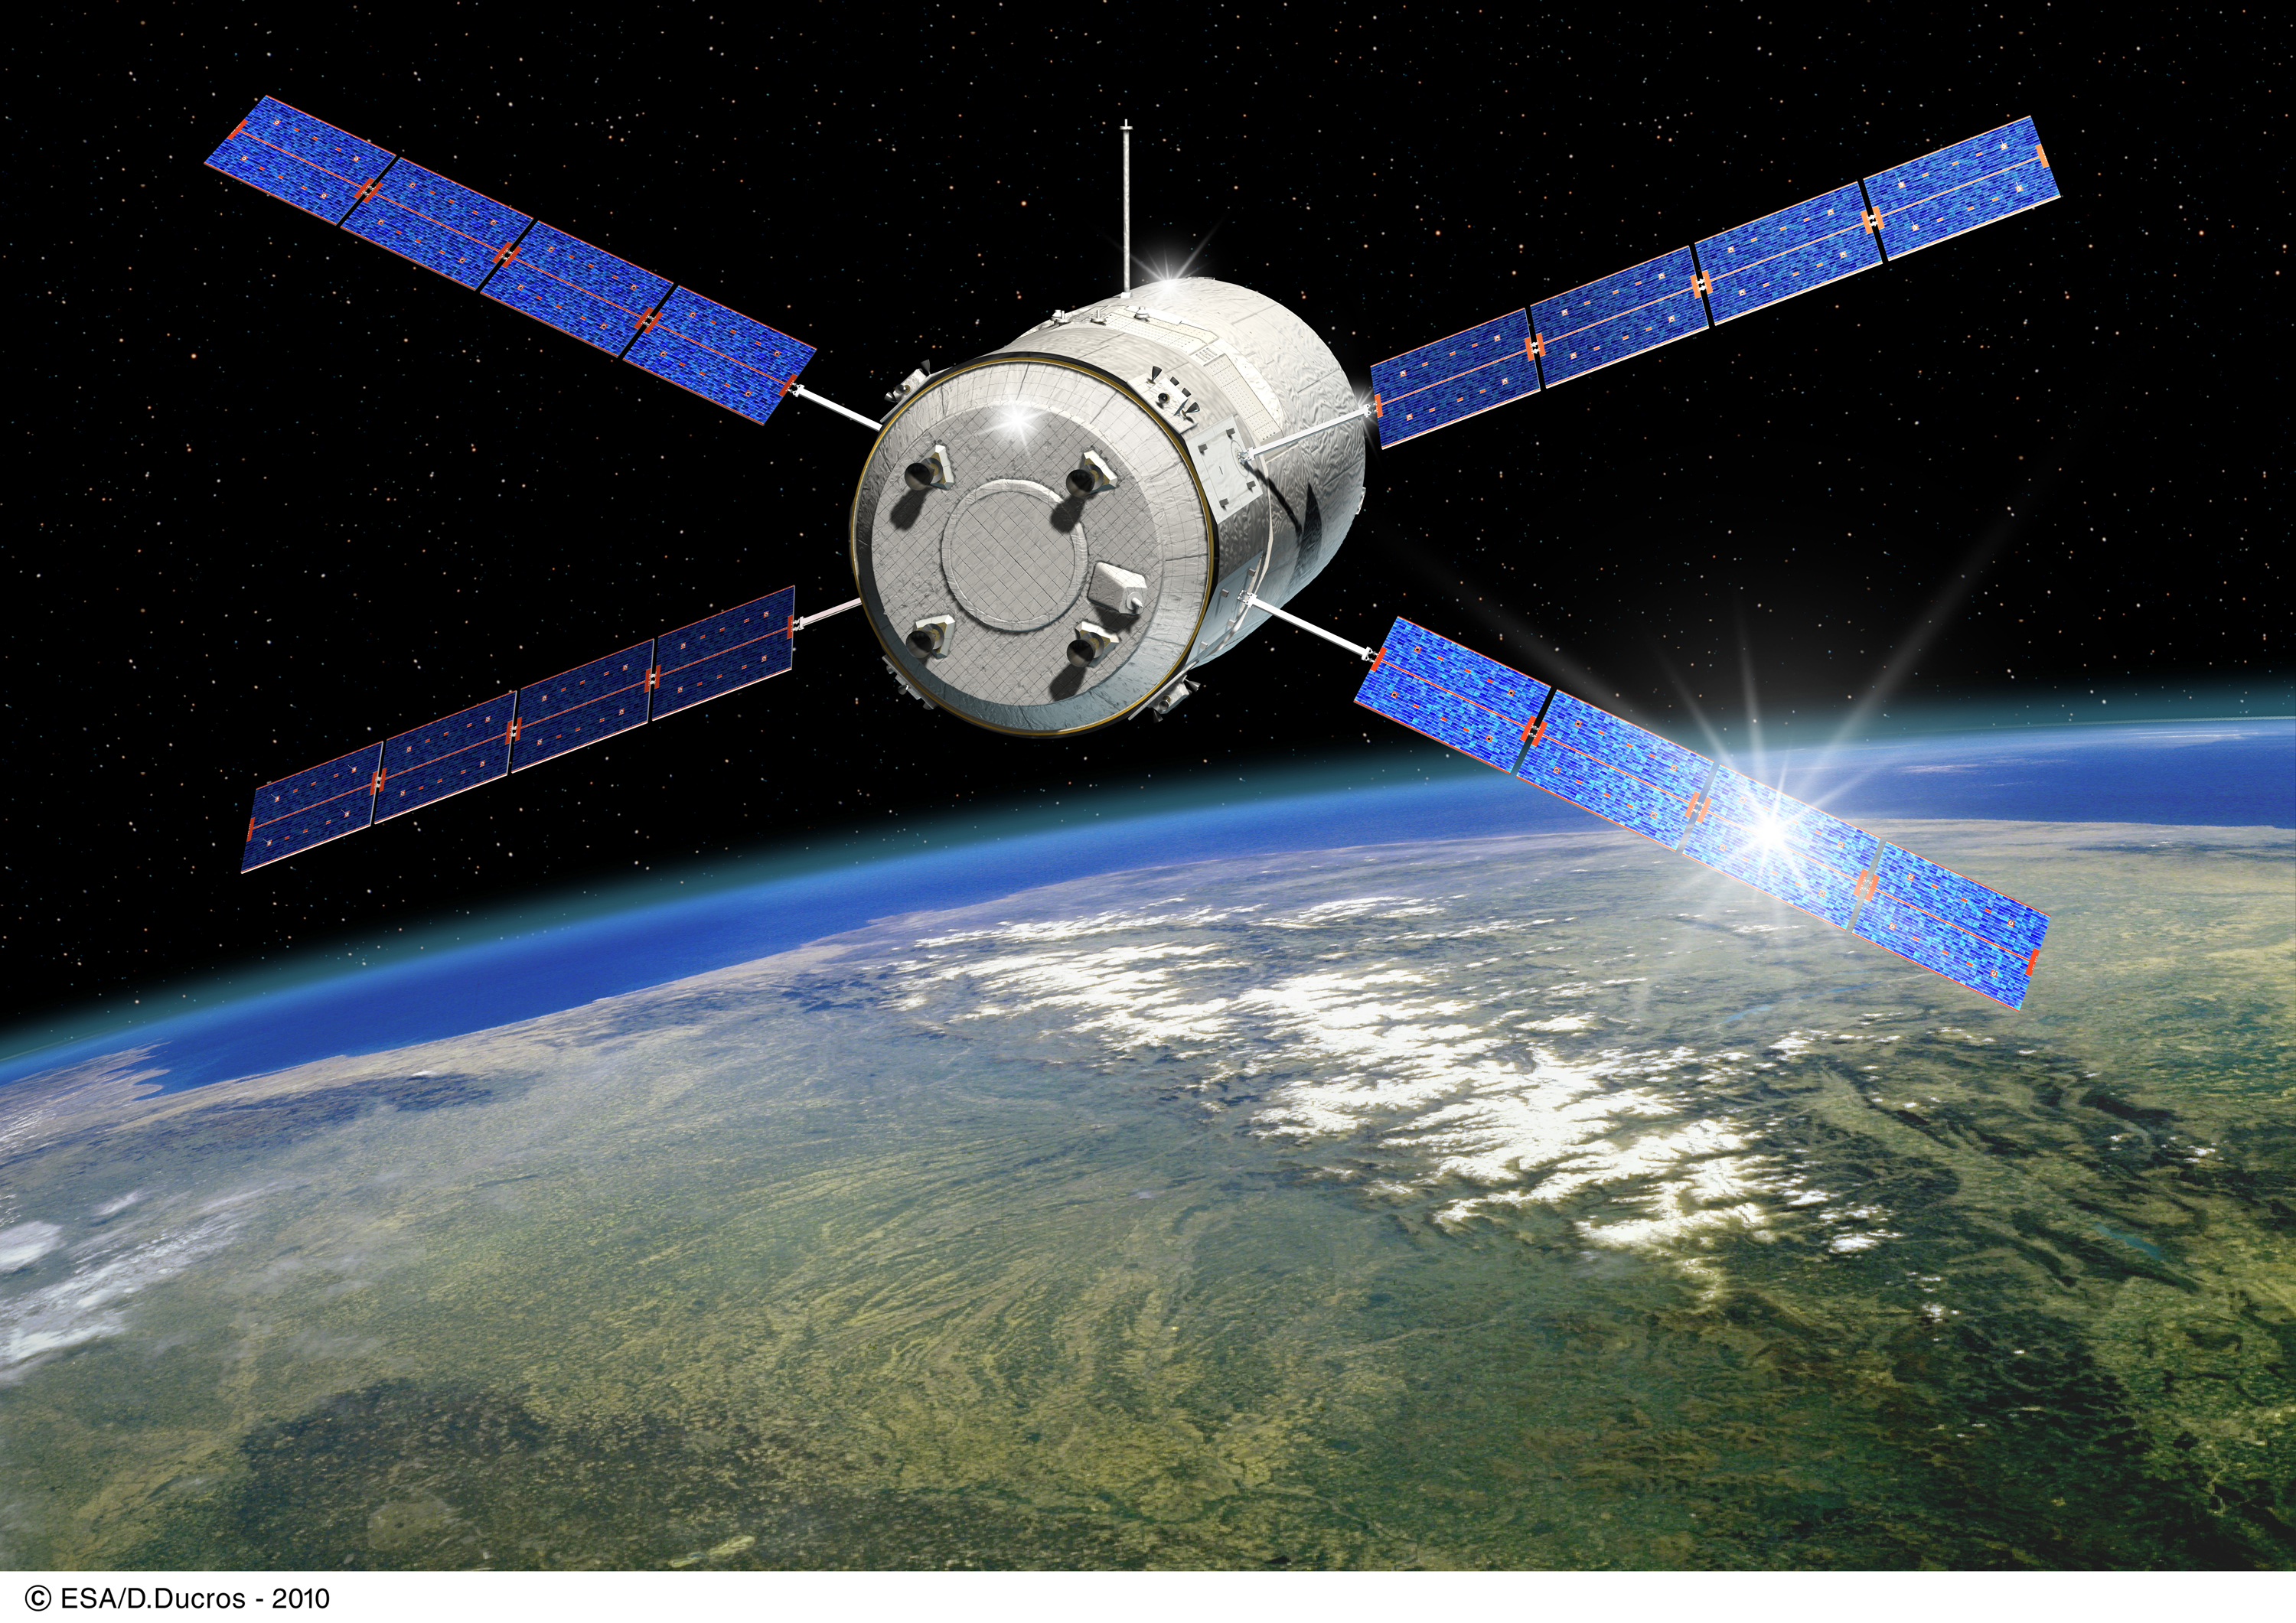 Space in Images - 2011 - 01 - Artist's view of ESA's ATV ...